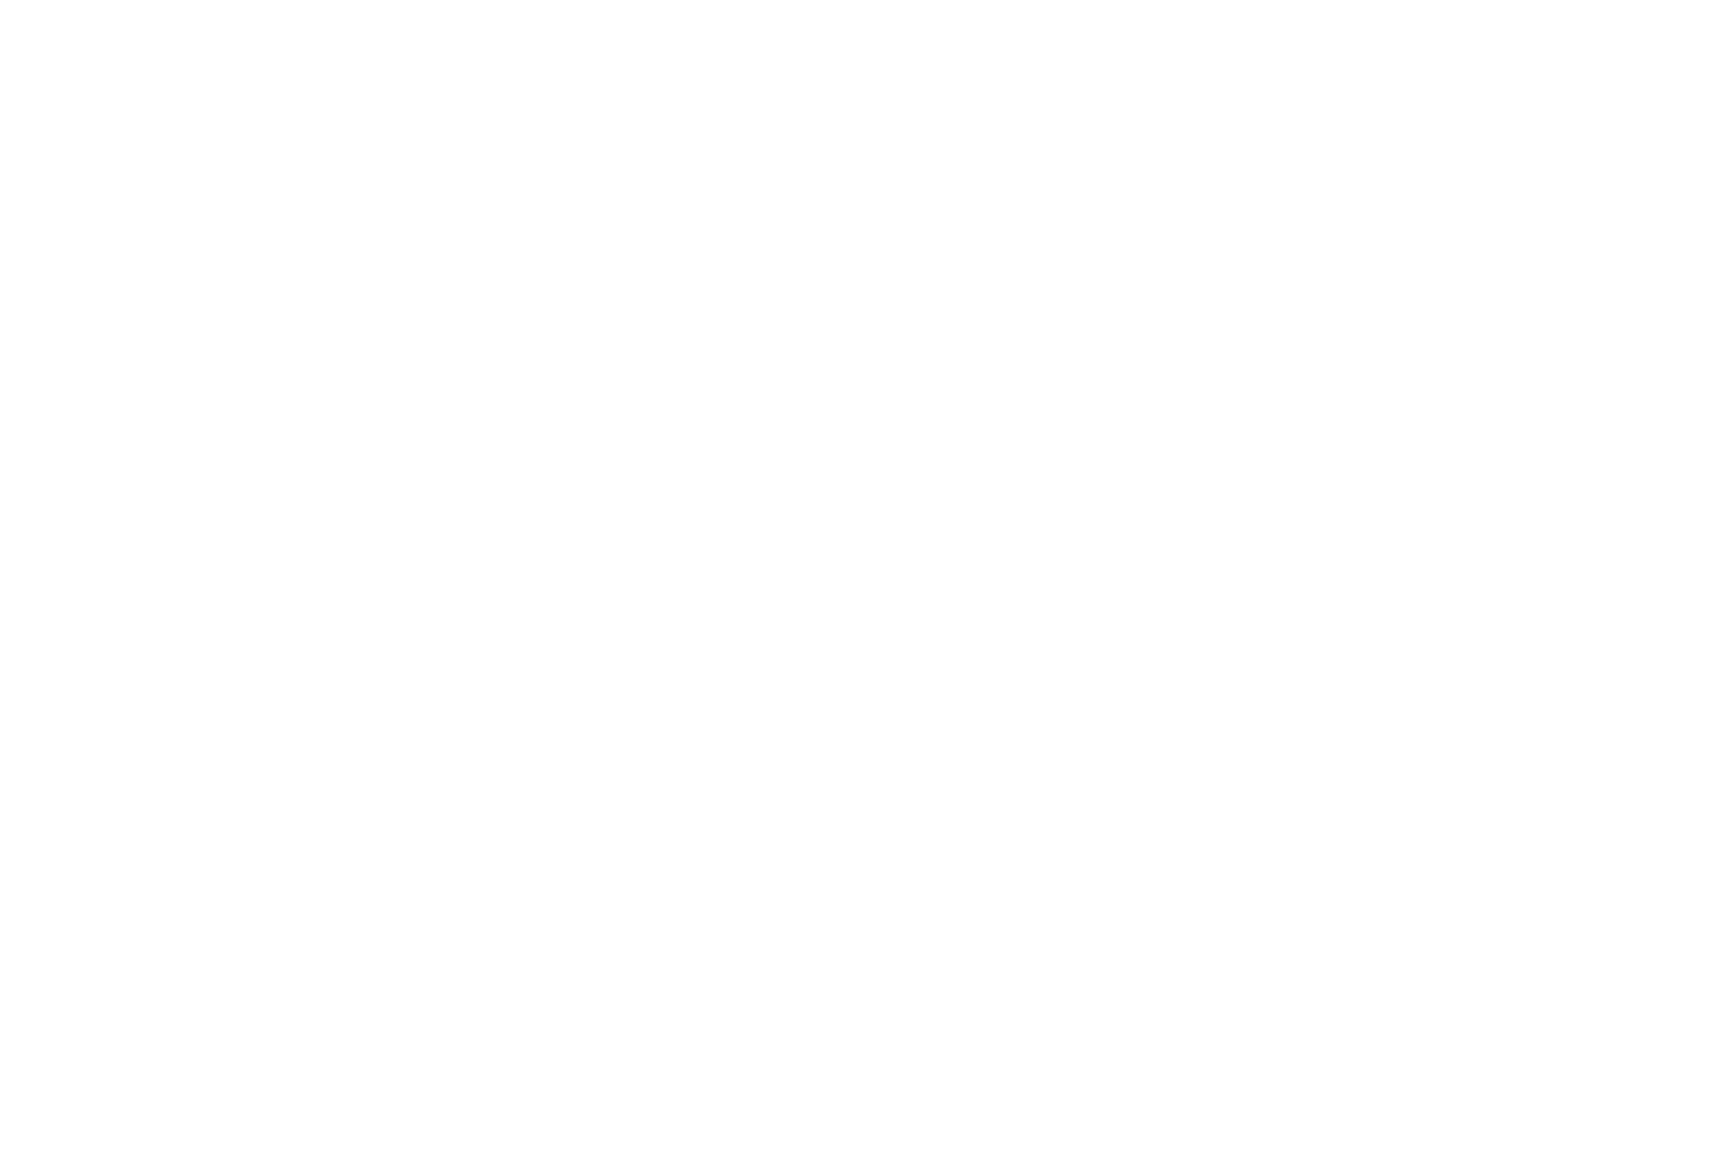 WINNER - Monthly Indie Shorts - 2020